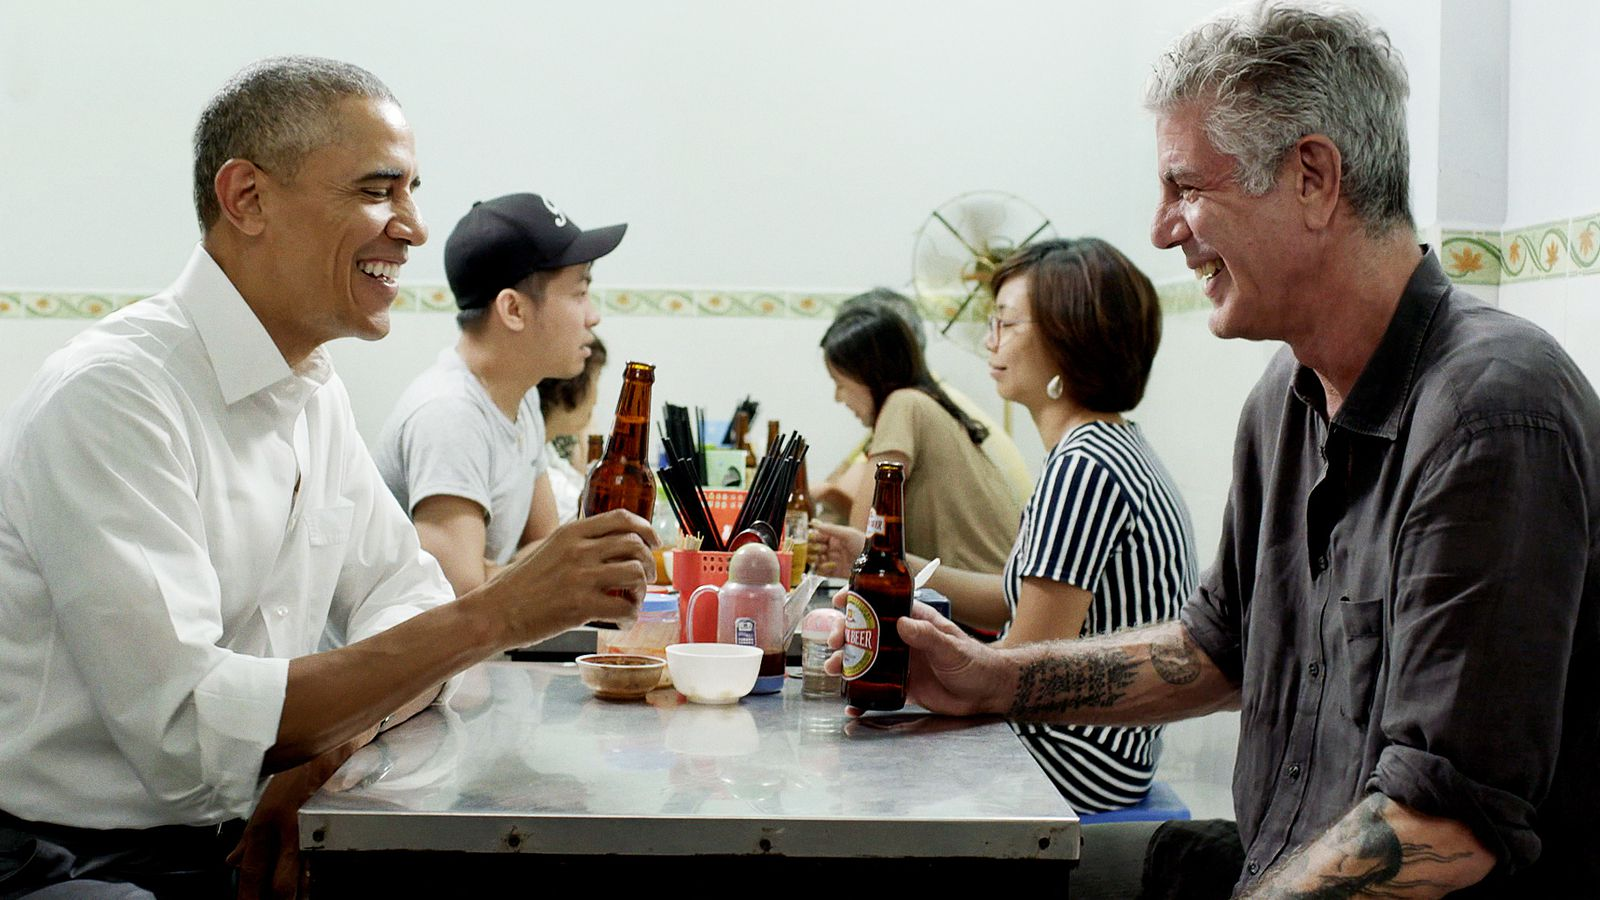 Recapping Anthony Bourdain 'Parts Unknown' in Hanoi